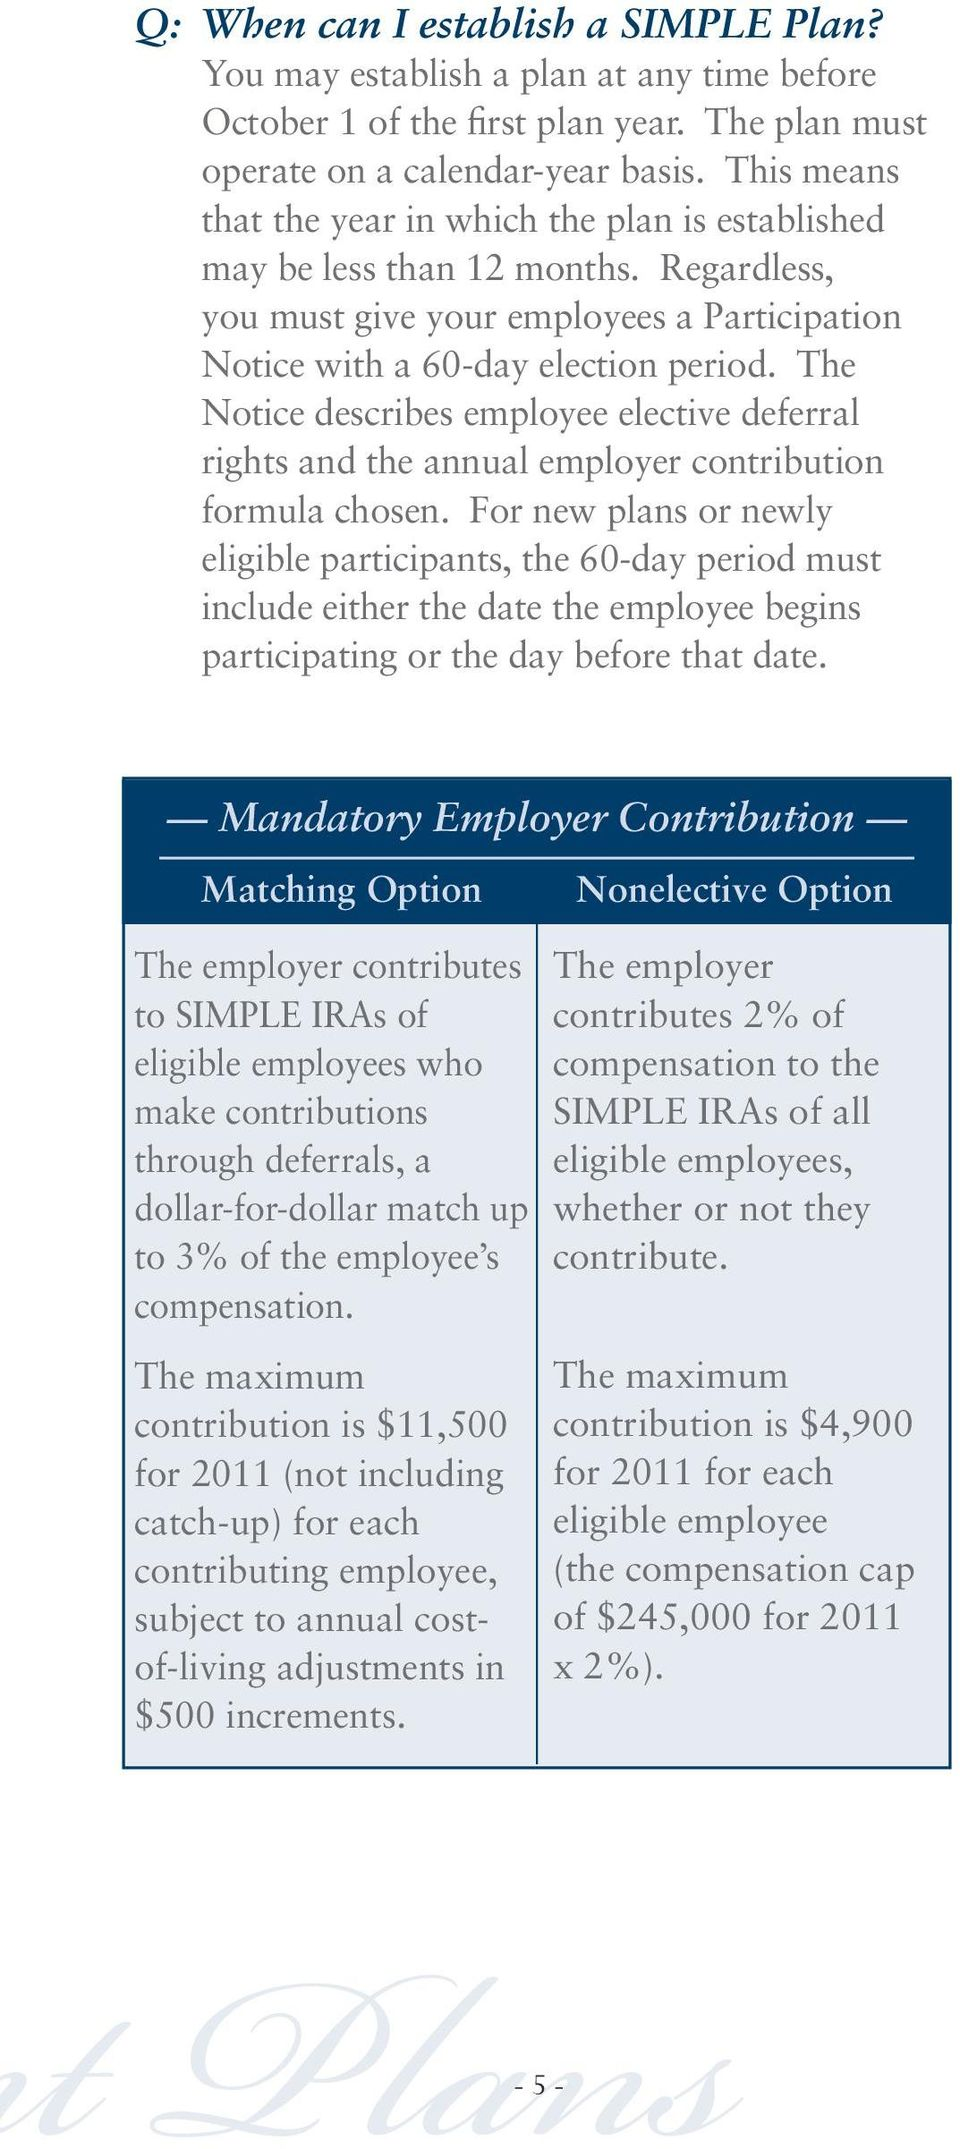 The Notice describes employee elective deferral rights and the annual employer contribution formula chosen.